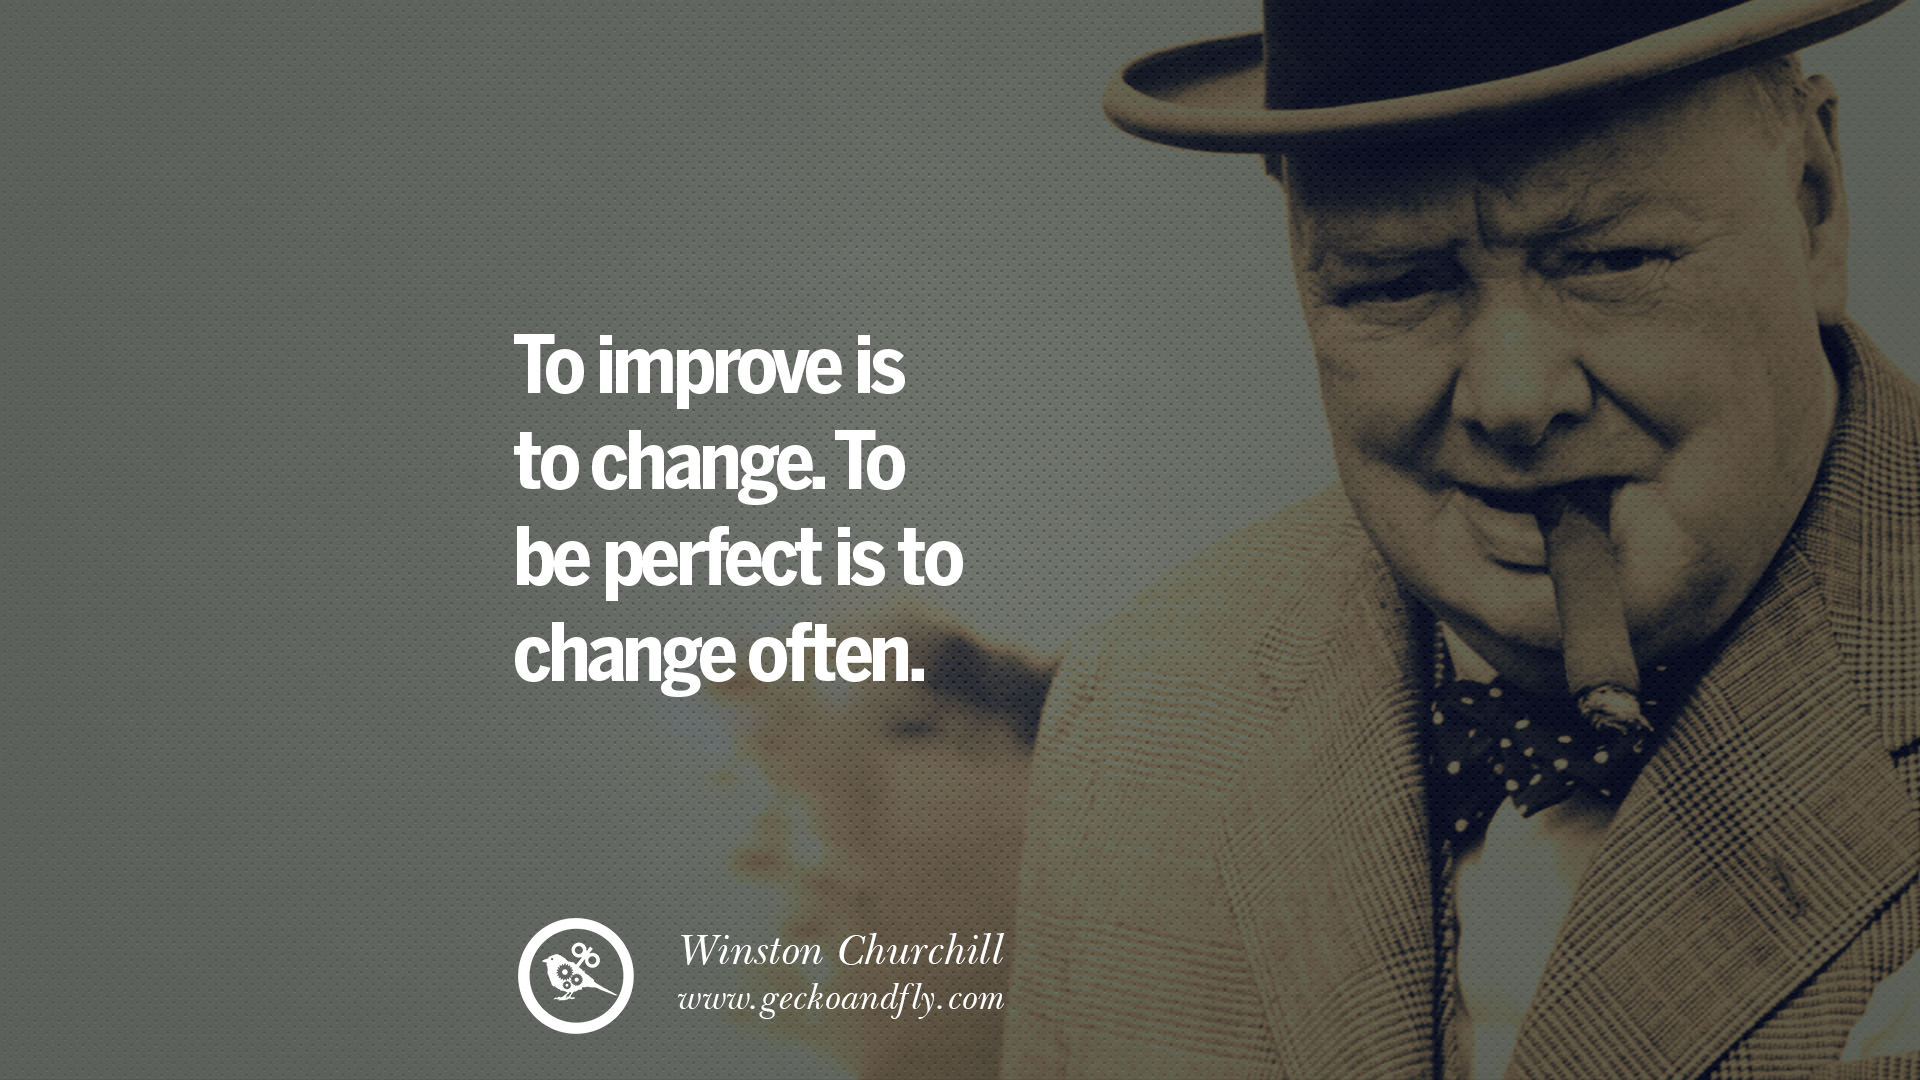 Best Literature Quote Wallpapers 30 Sir Winston Churchill Quotes And Speeches On Success